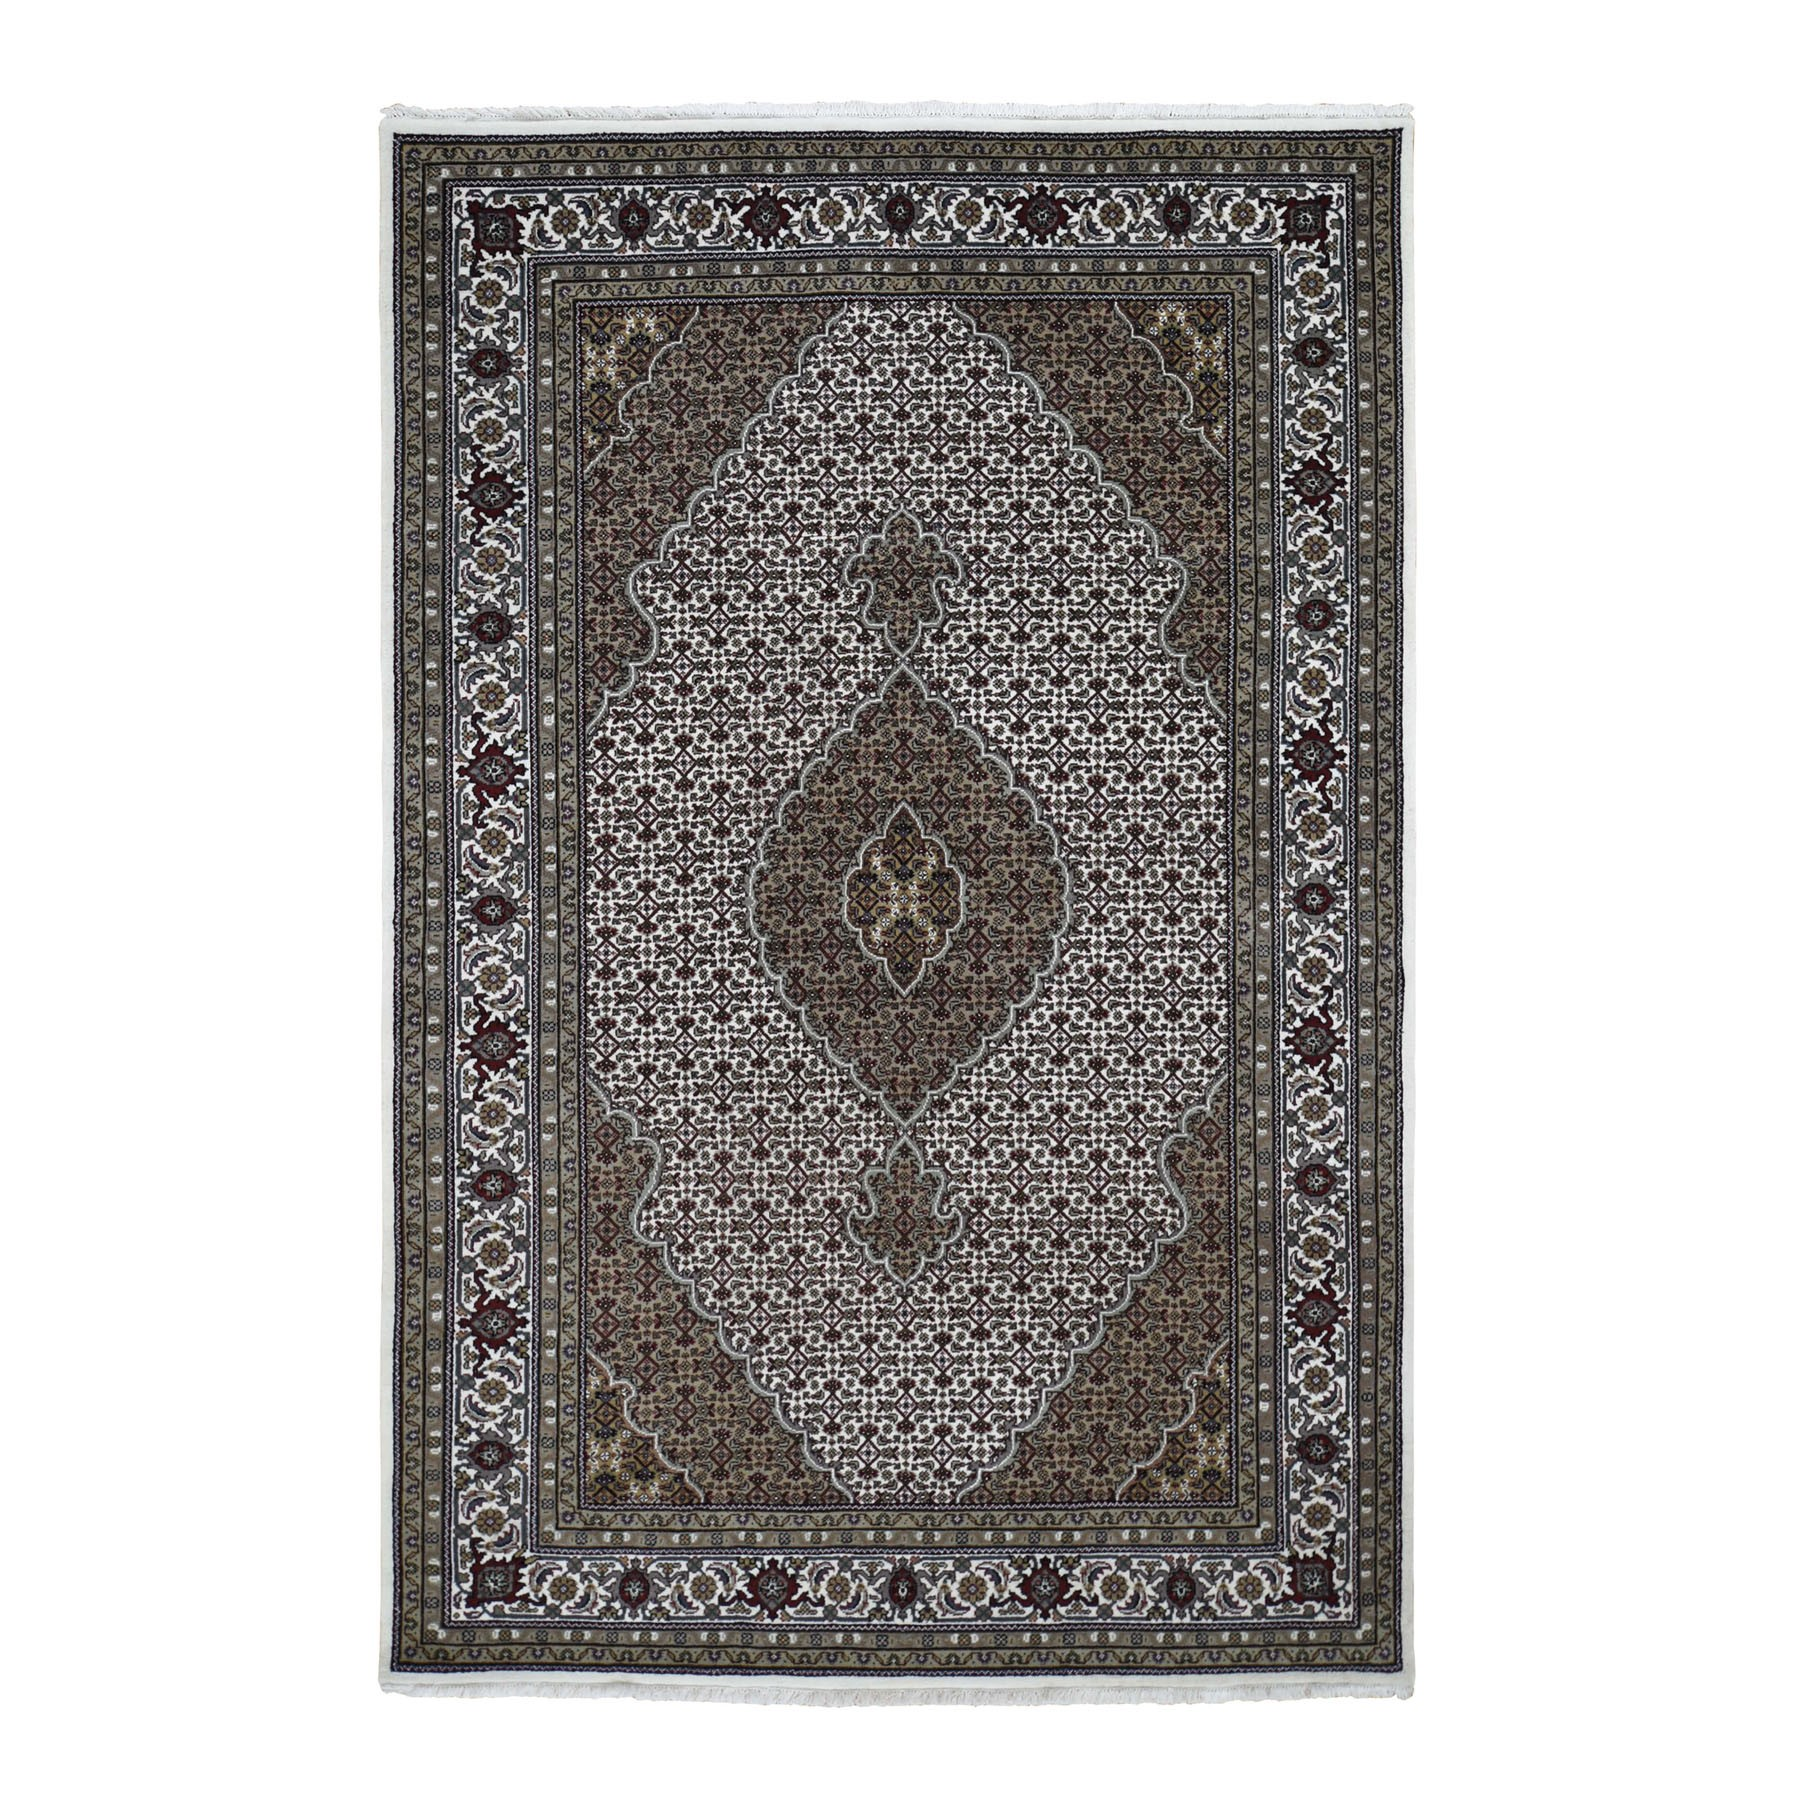 Pirniakan Collection Hand Knotted Ivory Rug No: 0196366